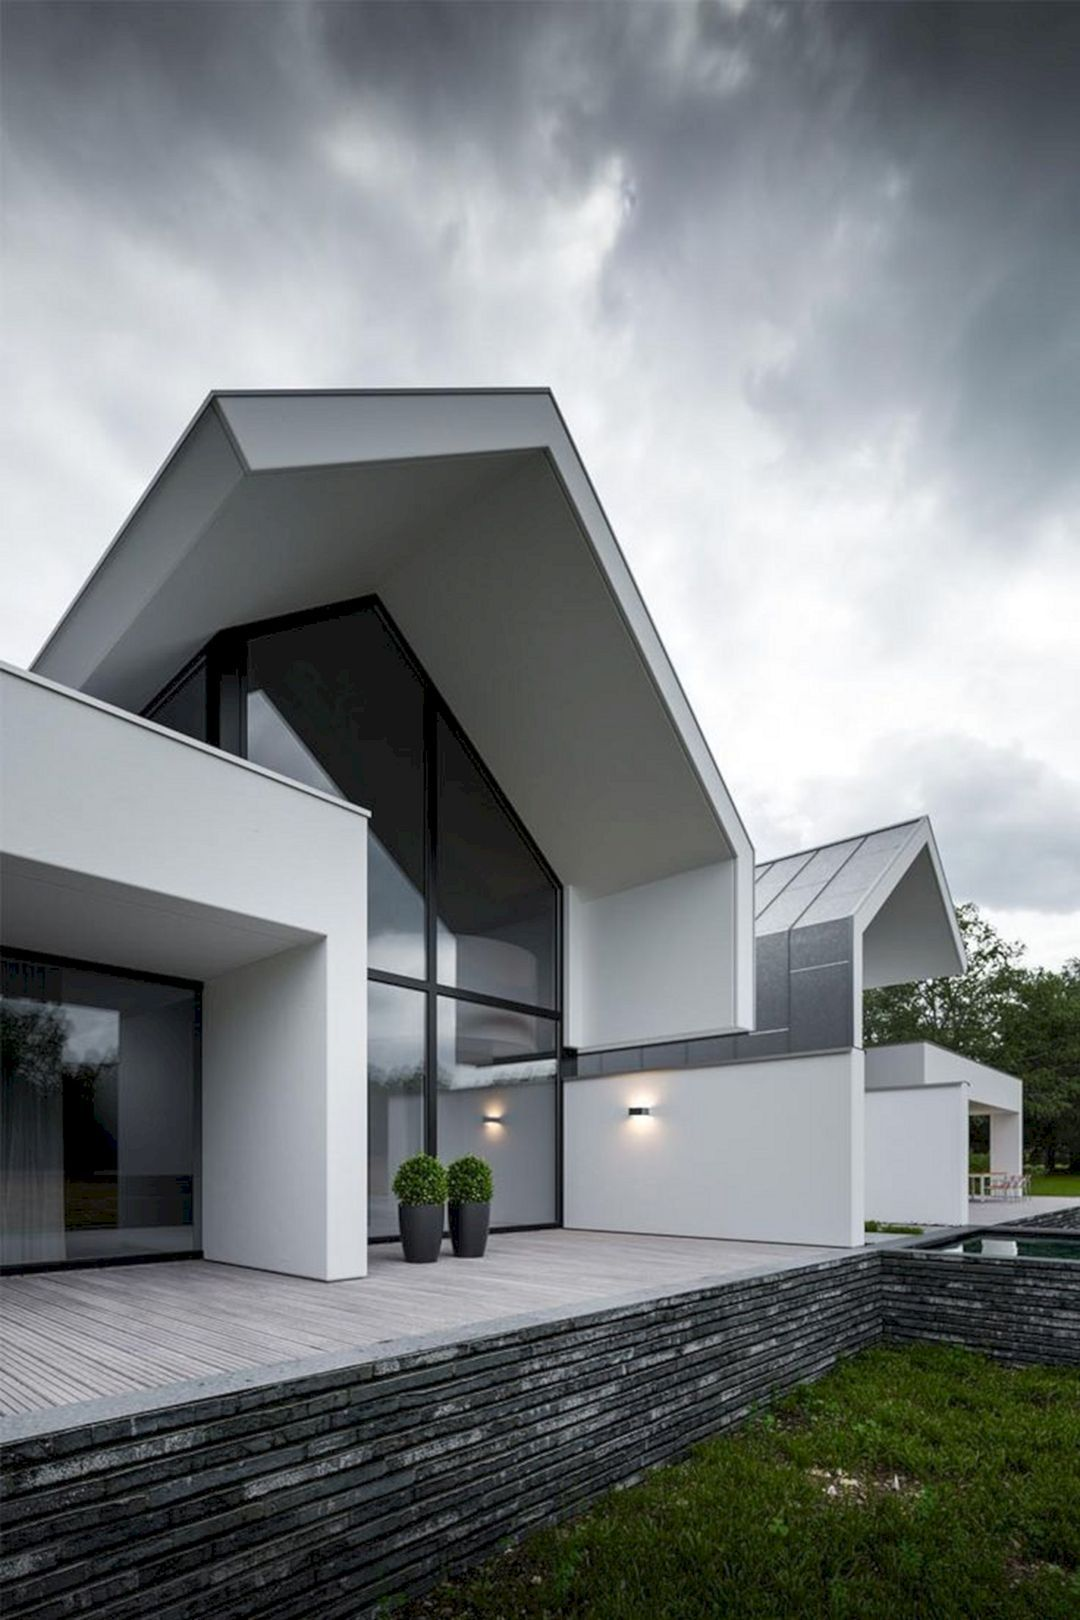 Awesome Top 20 Modern Home Architecture Ideas For Best Inspiration Https Freshouz Com Top 20 Mode Architecture House Architecture Design Modern House Design